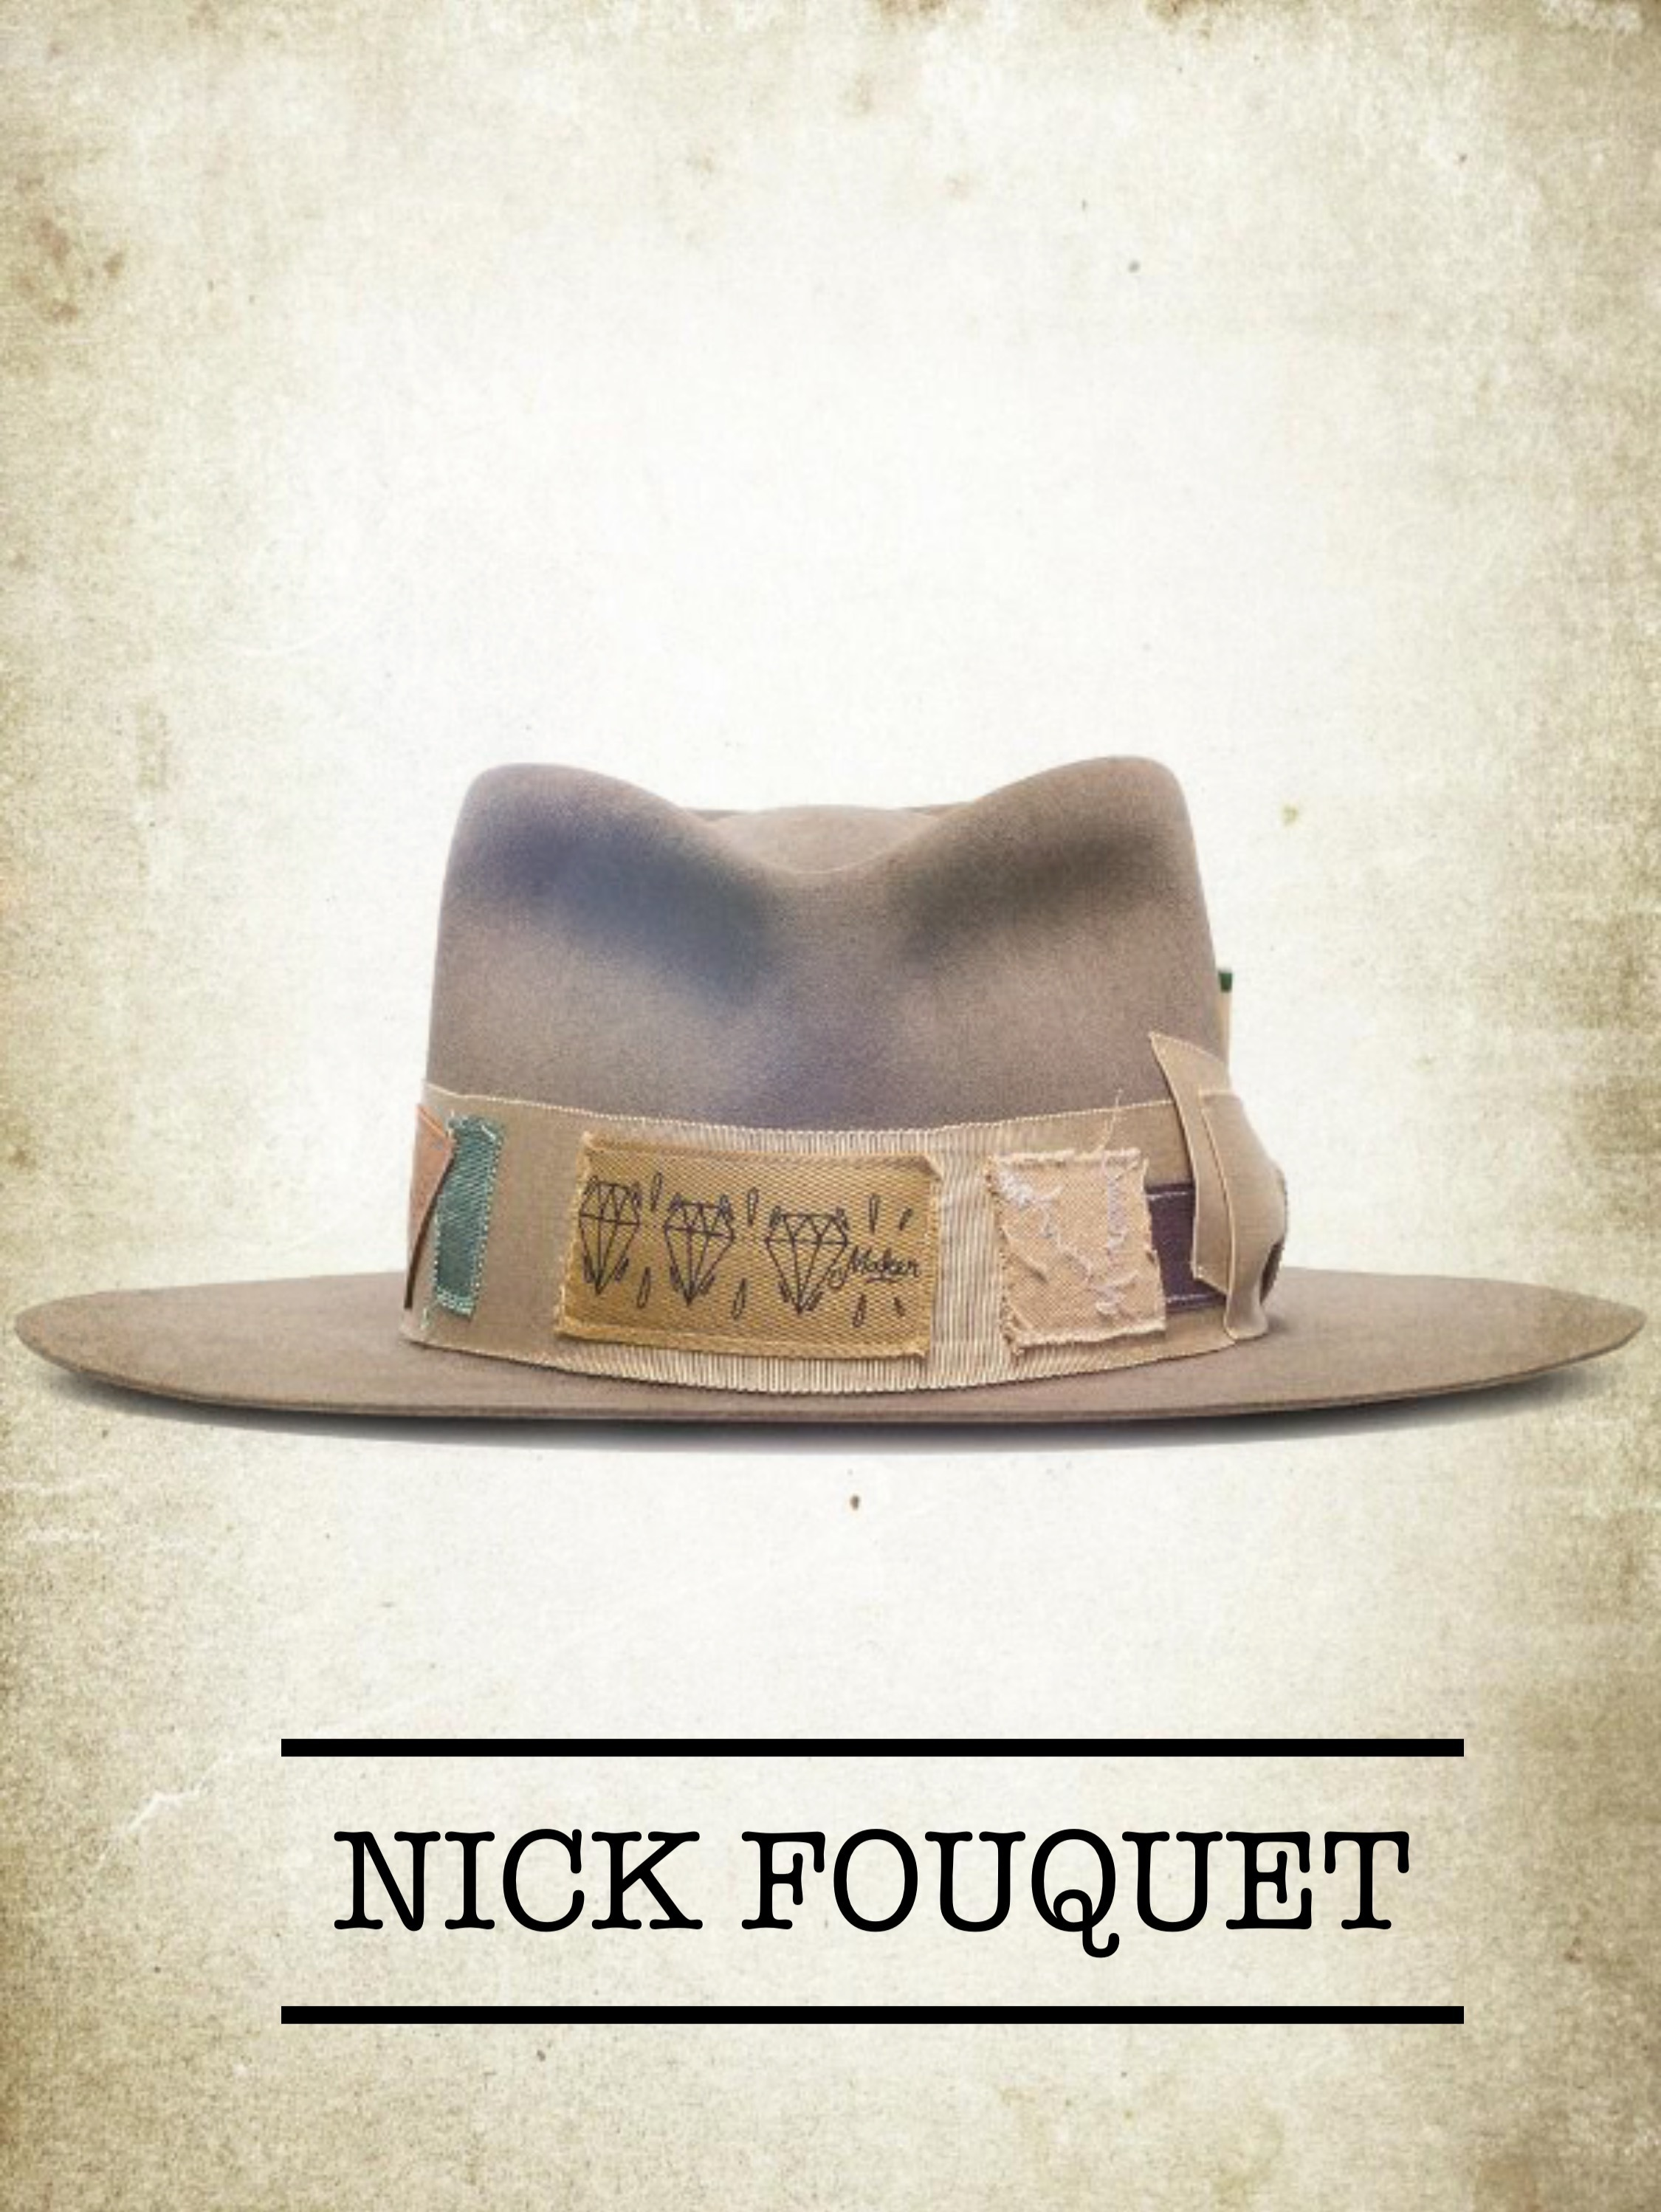 shop nick fouquet accessories